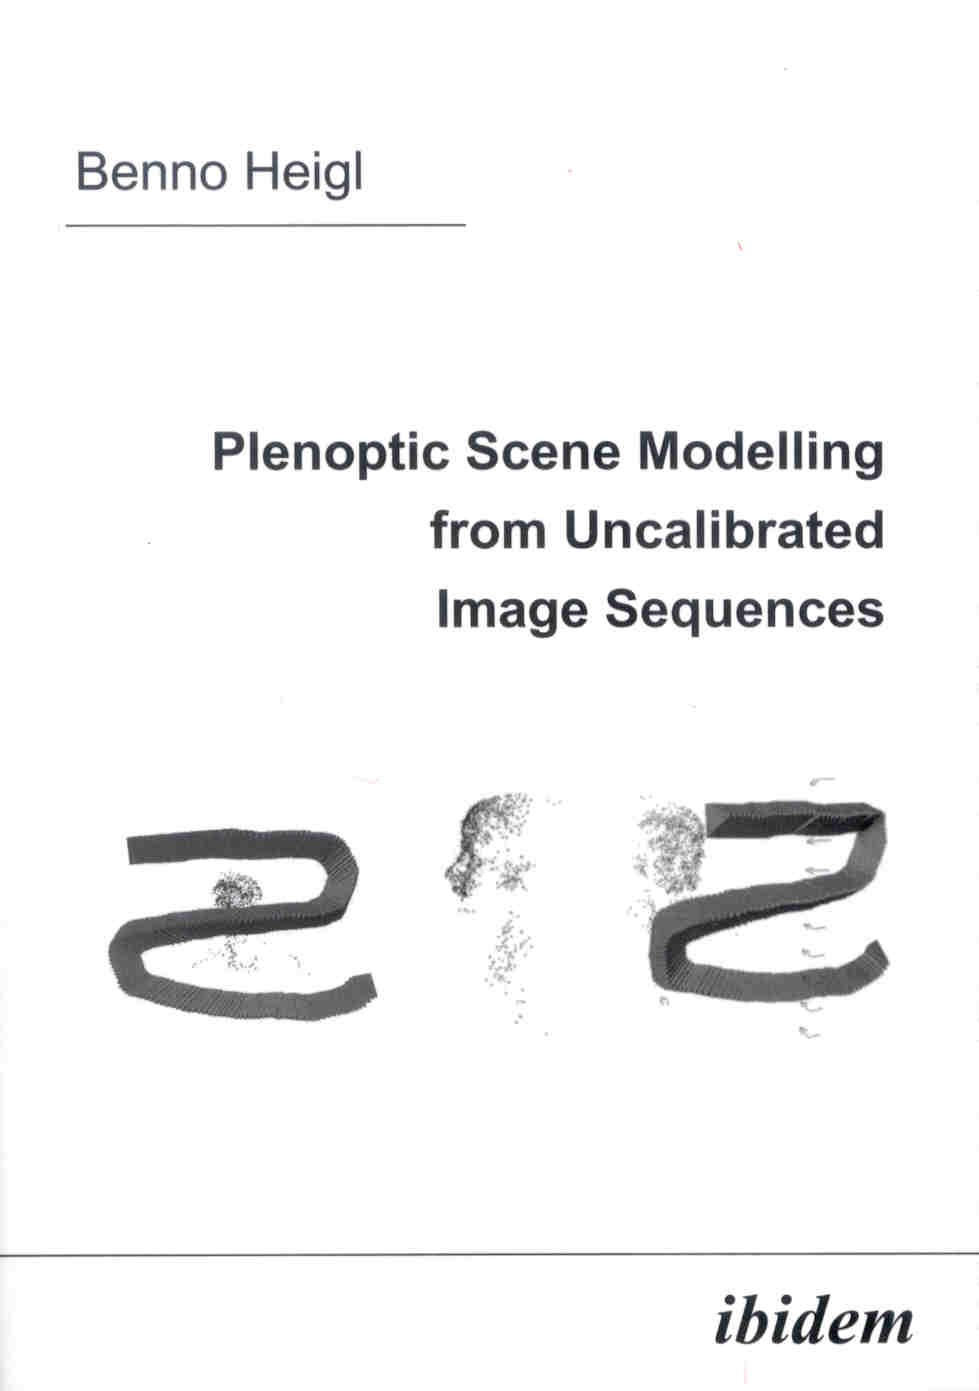 Plenoptic Scene Modelling from Uncalibrated Image Sequences